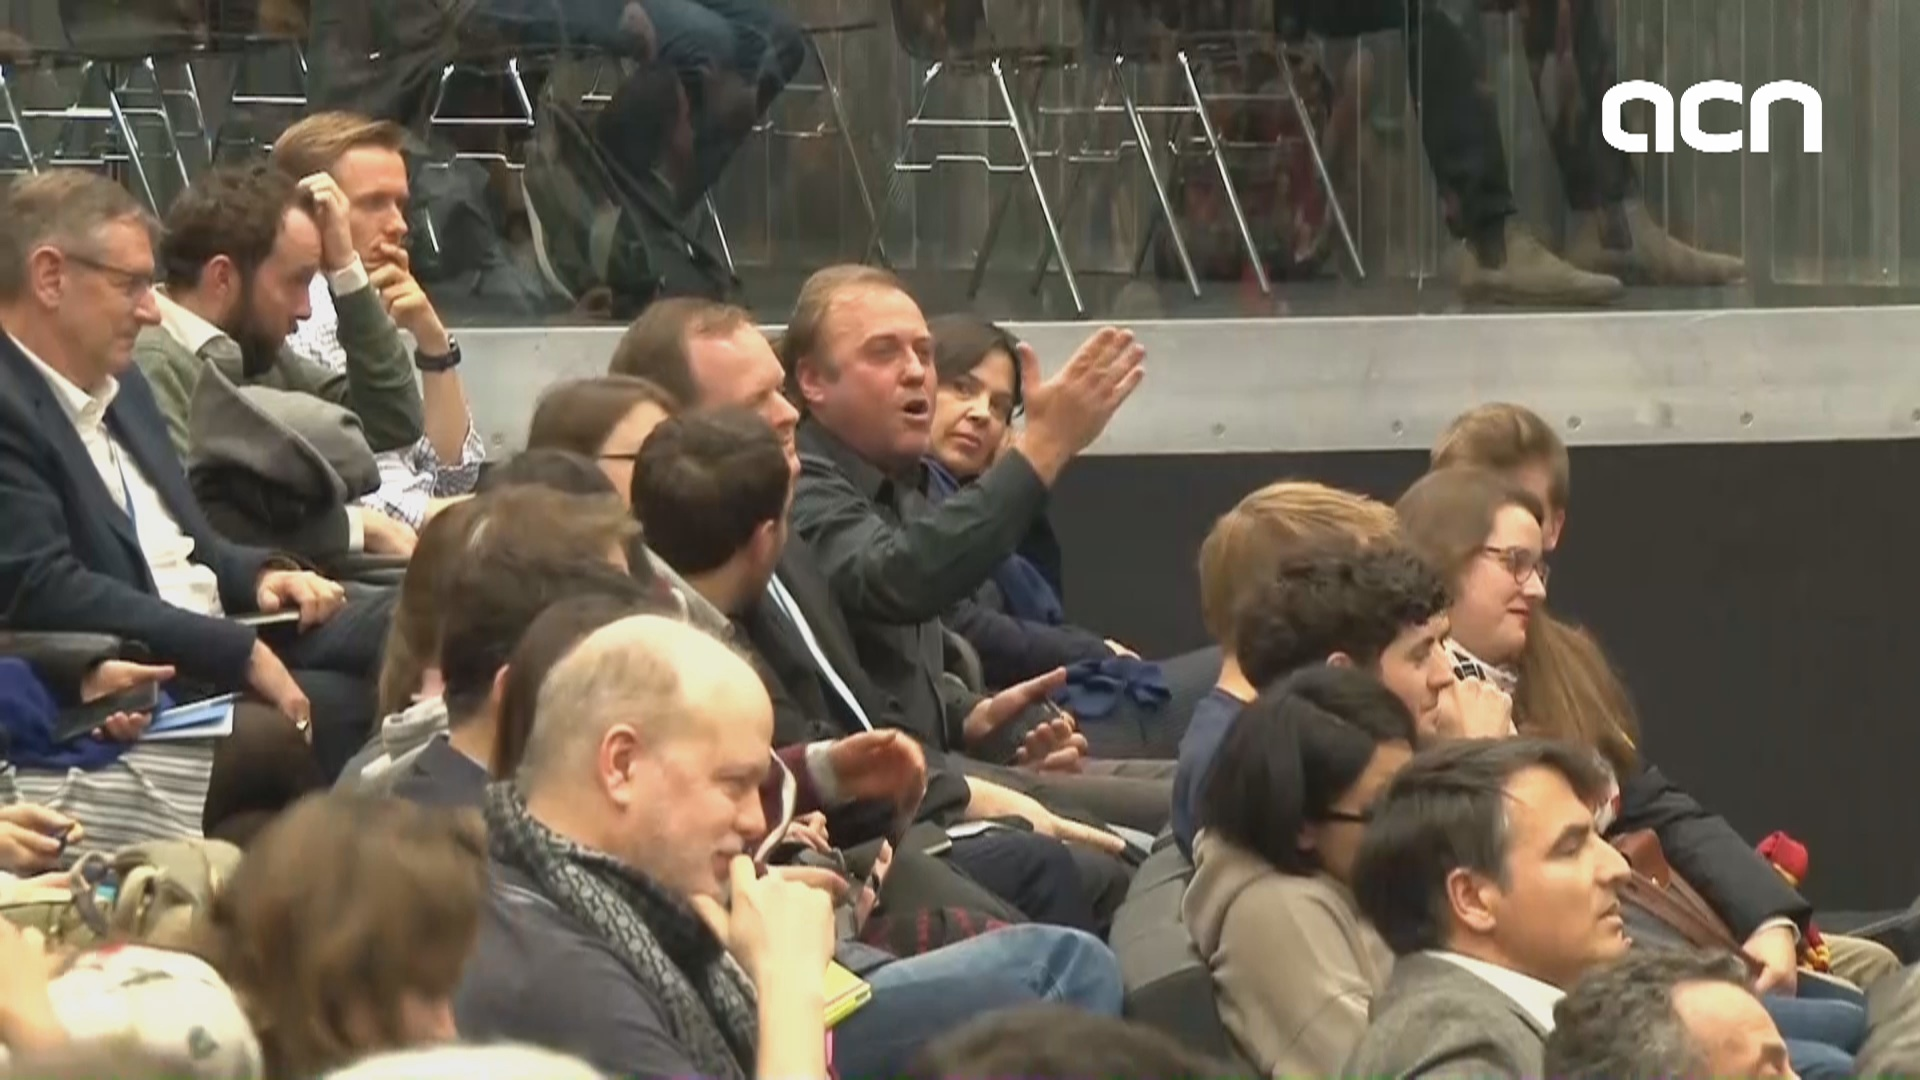 An attendee heckles Puigdemont at debate in Geneva